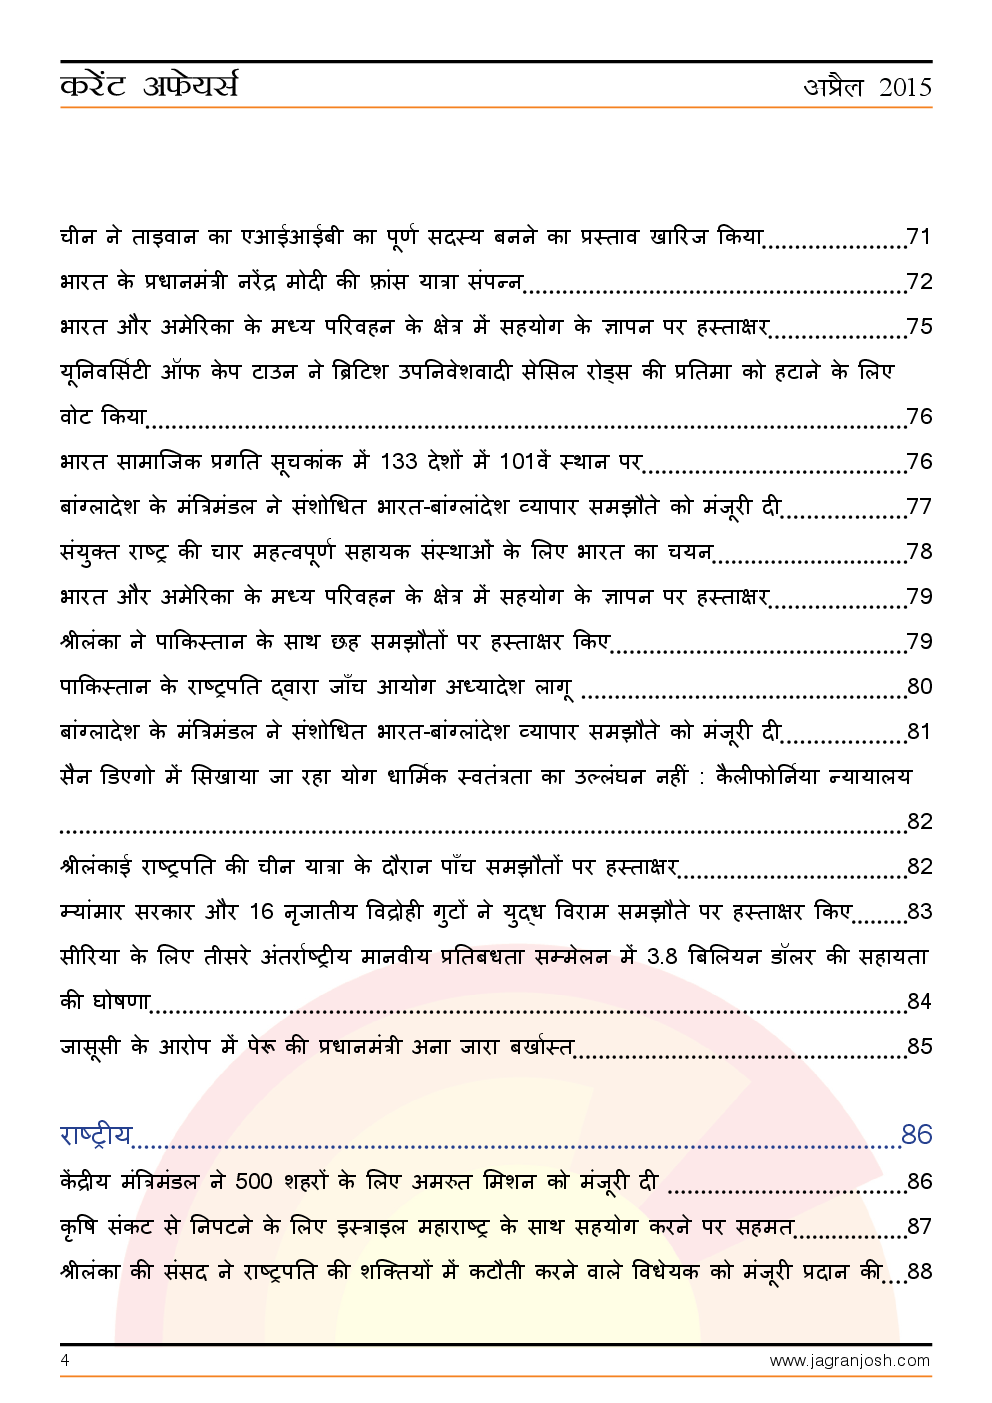 Current Affairs April 2015 (Hindi) - Page 4